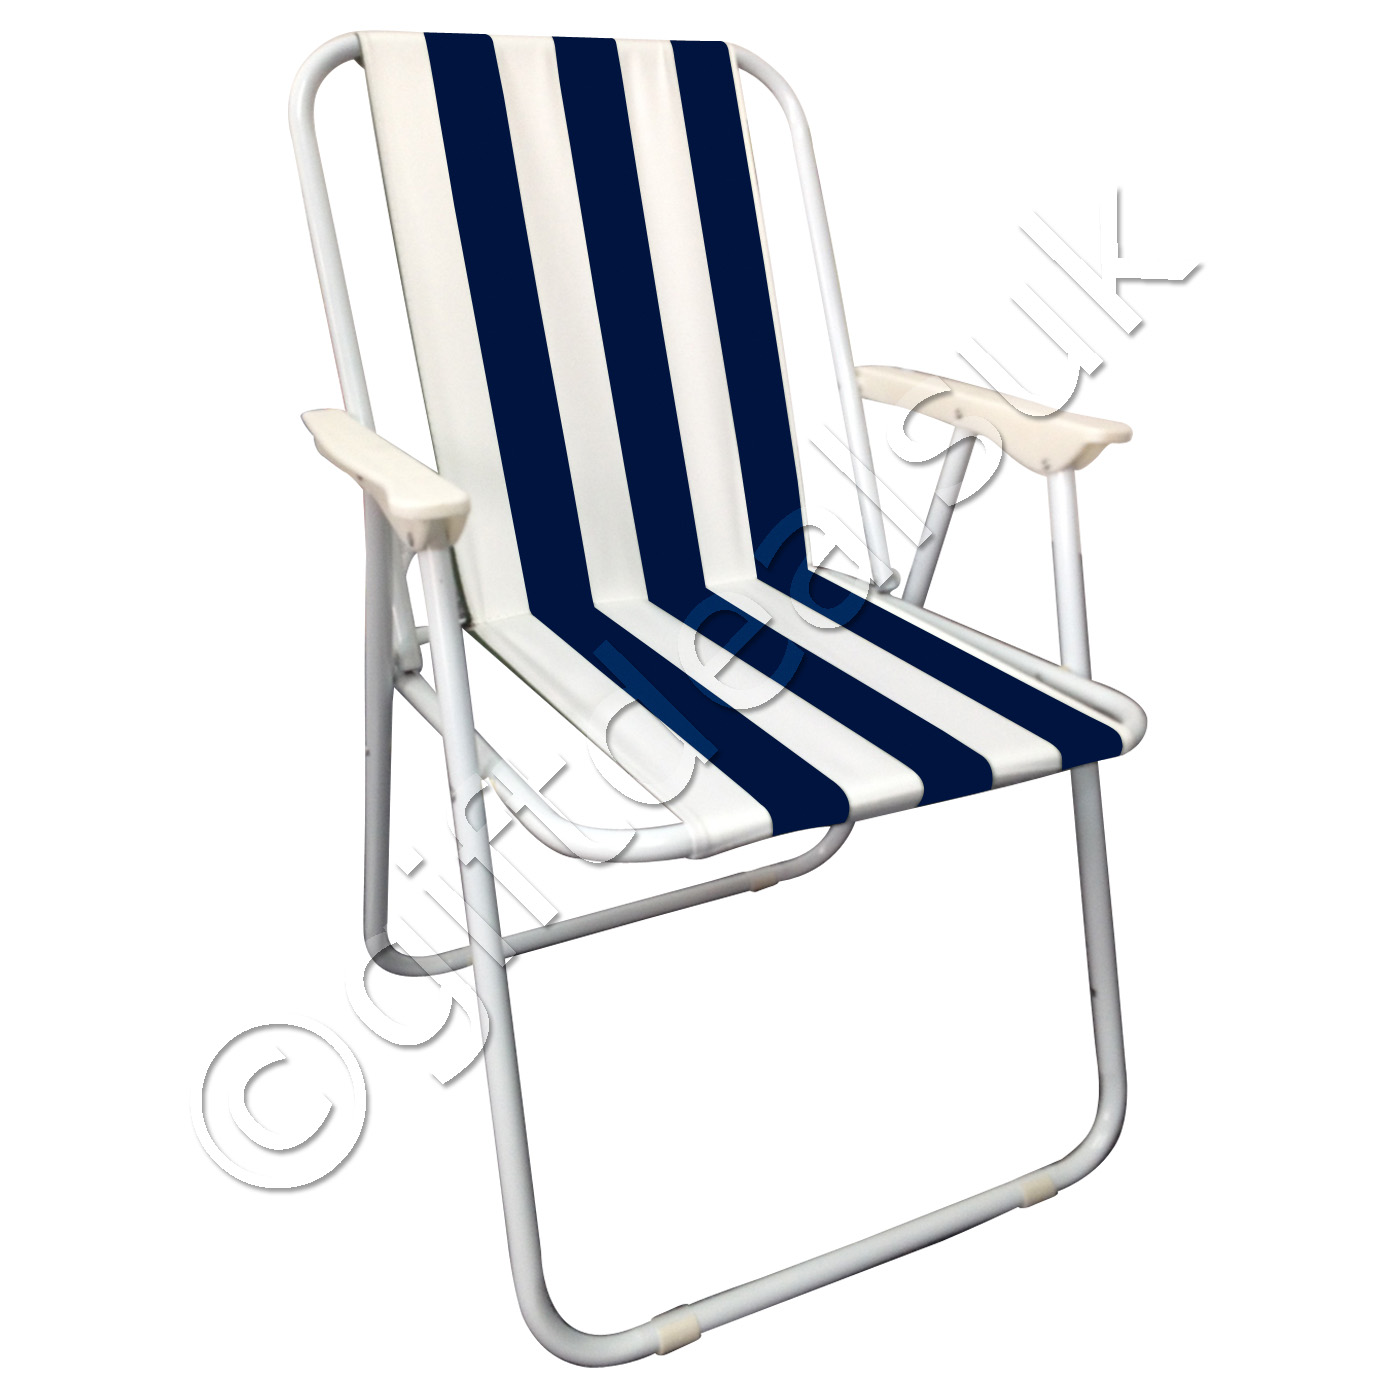 New design portable folding deck chair outdoor garden for Chair new design